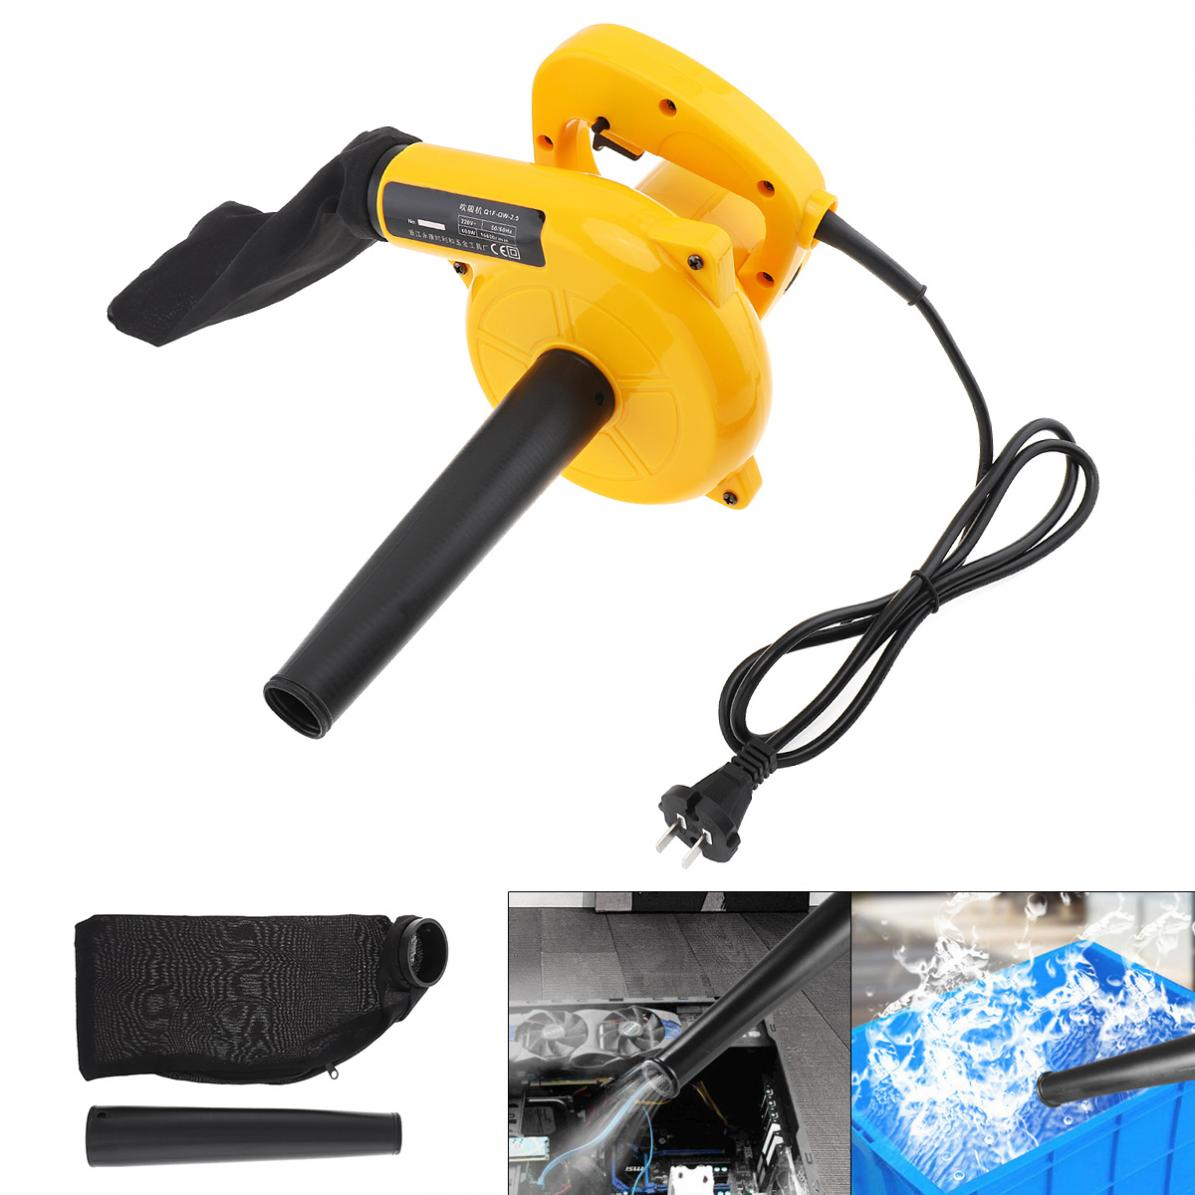 220V 600W 13000rpm Multifunctional Portable Electric Blower Dust Collector Set Suction Head 1.2L Collecting Bag for Removing Dus